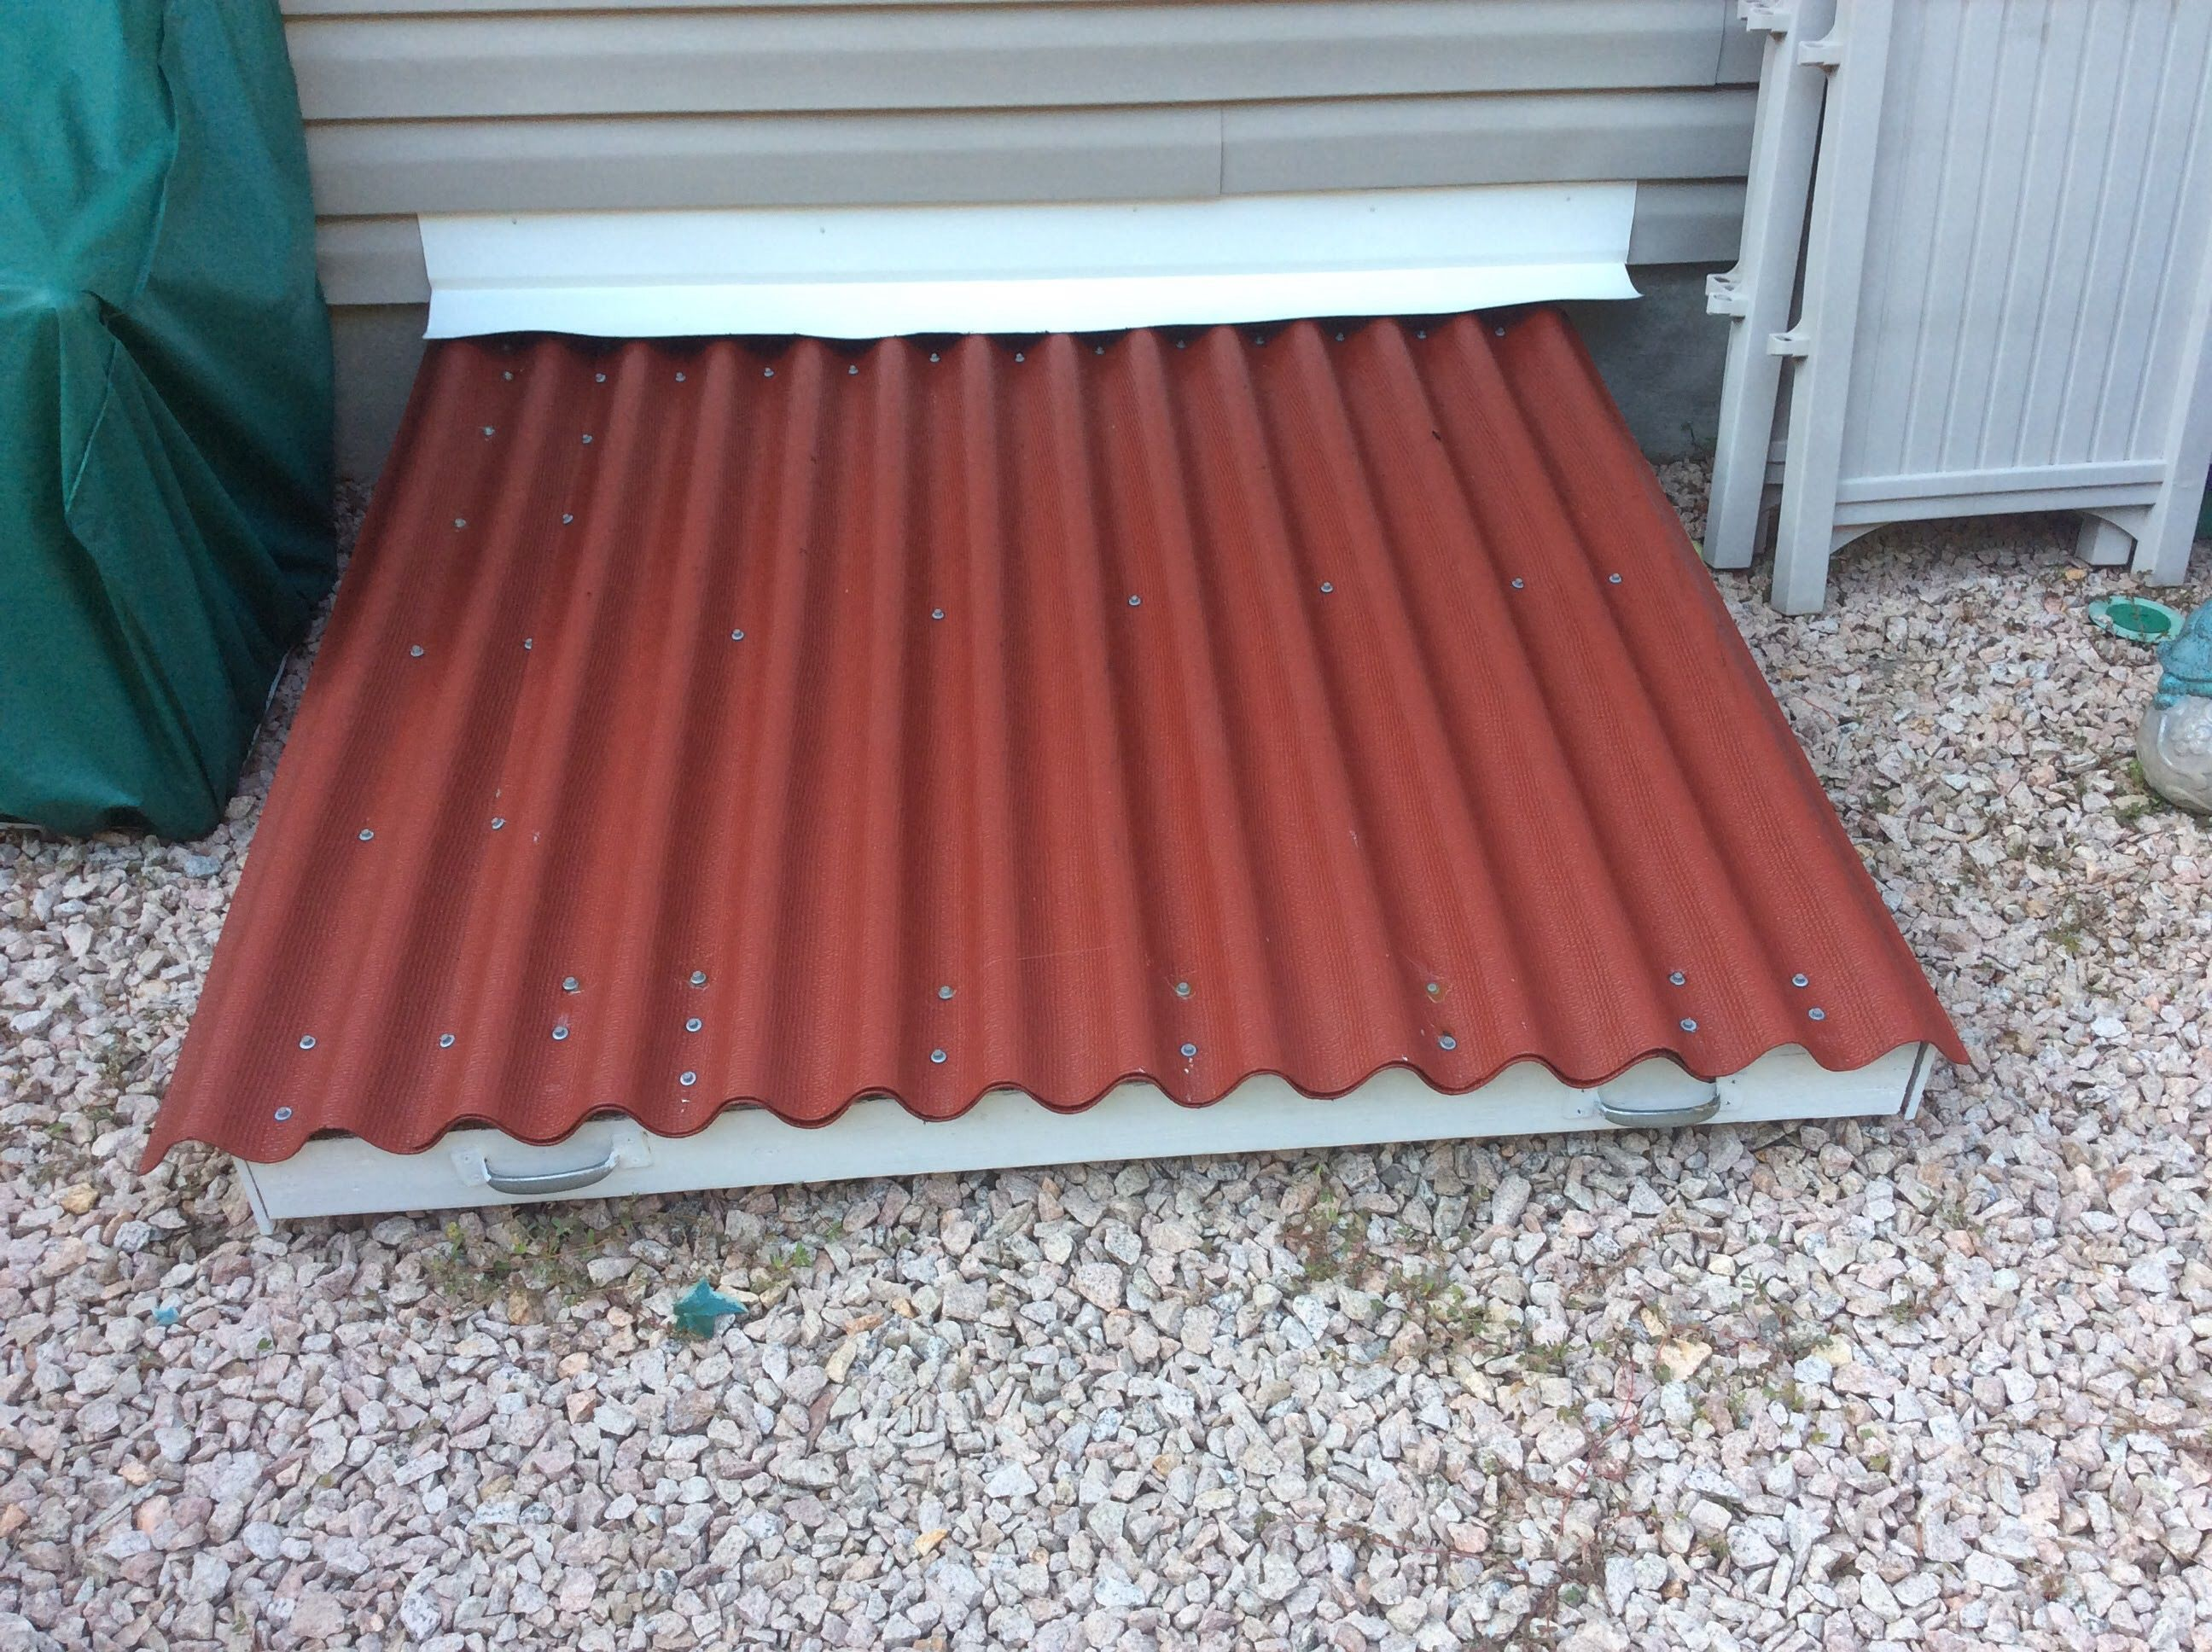 Roof Replacement Lancaster Pa Bulkhead Doors Crawl Space Cover Diy Crawlspace